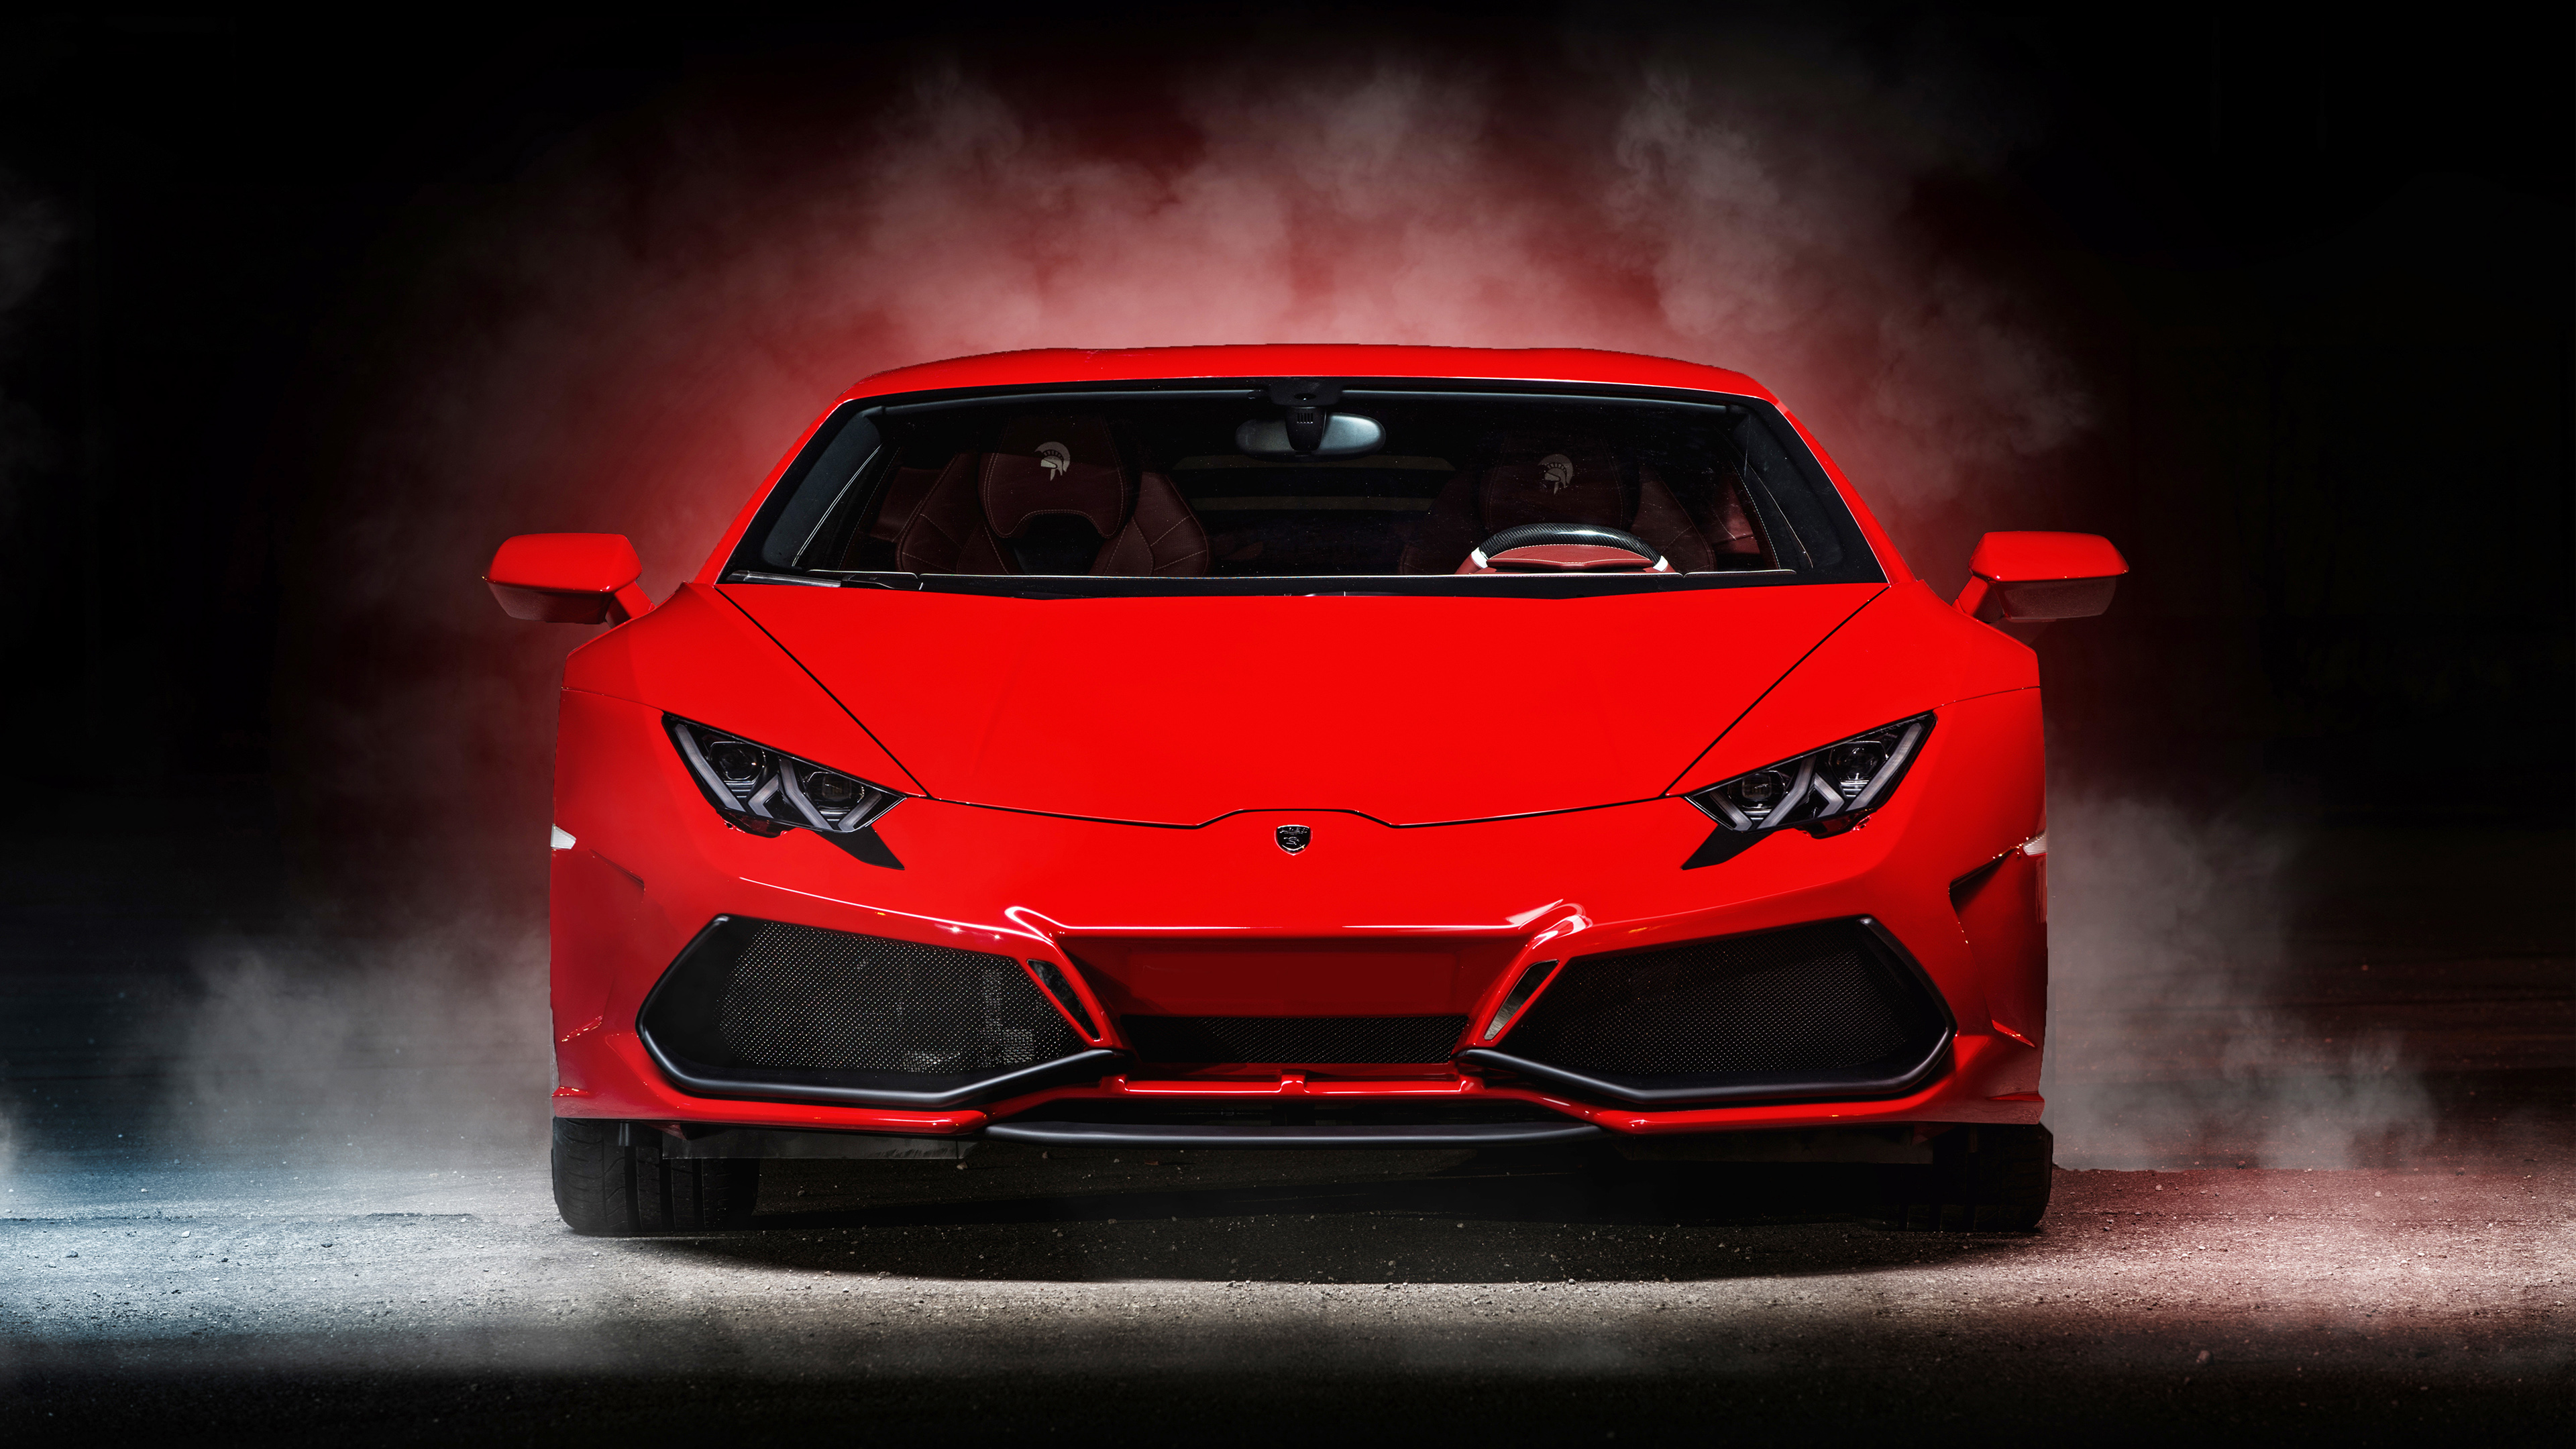 Lamborghini Huracan 4k Ultra Hd Wallpaper Background Image